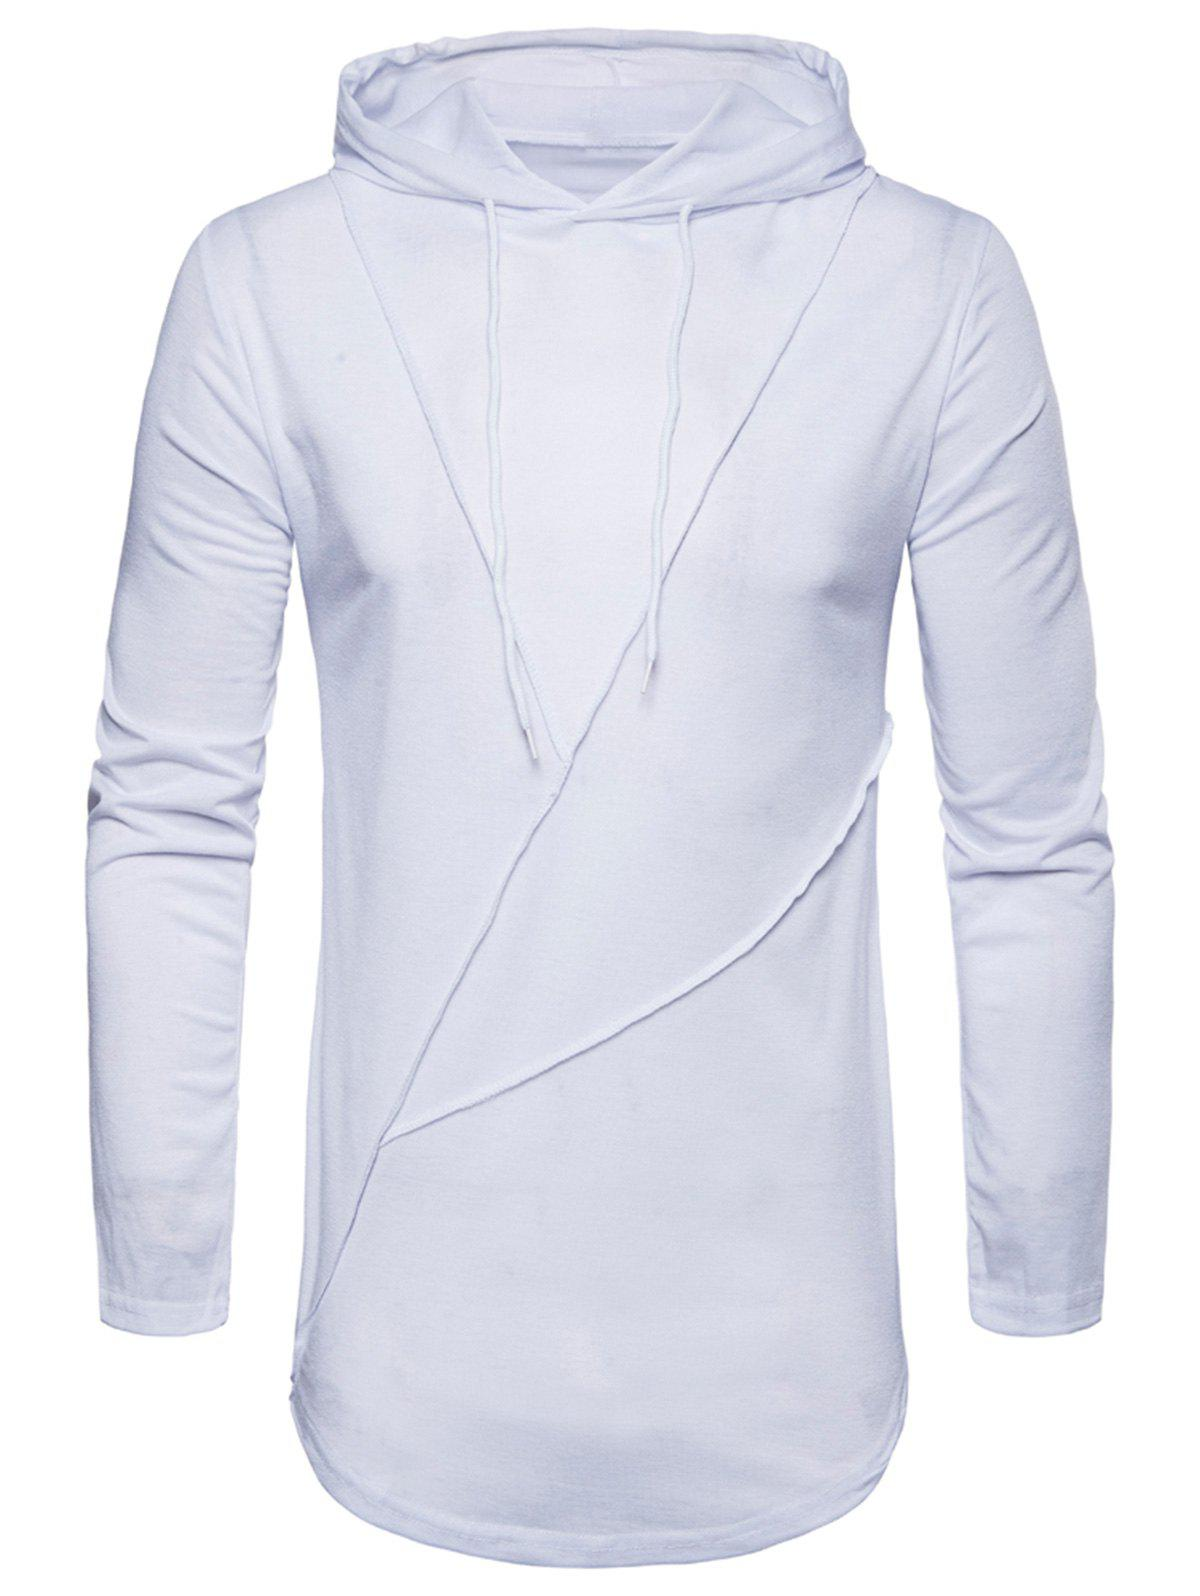 Zip Hem Solid Color Long Sleeve Hooded T-shirt - WHITE M